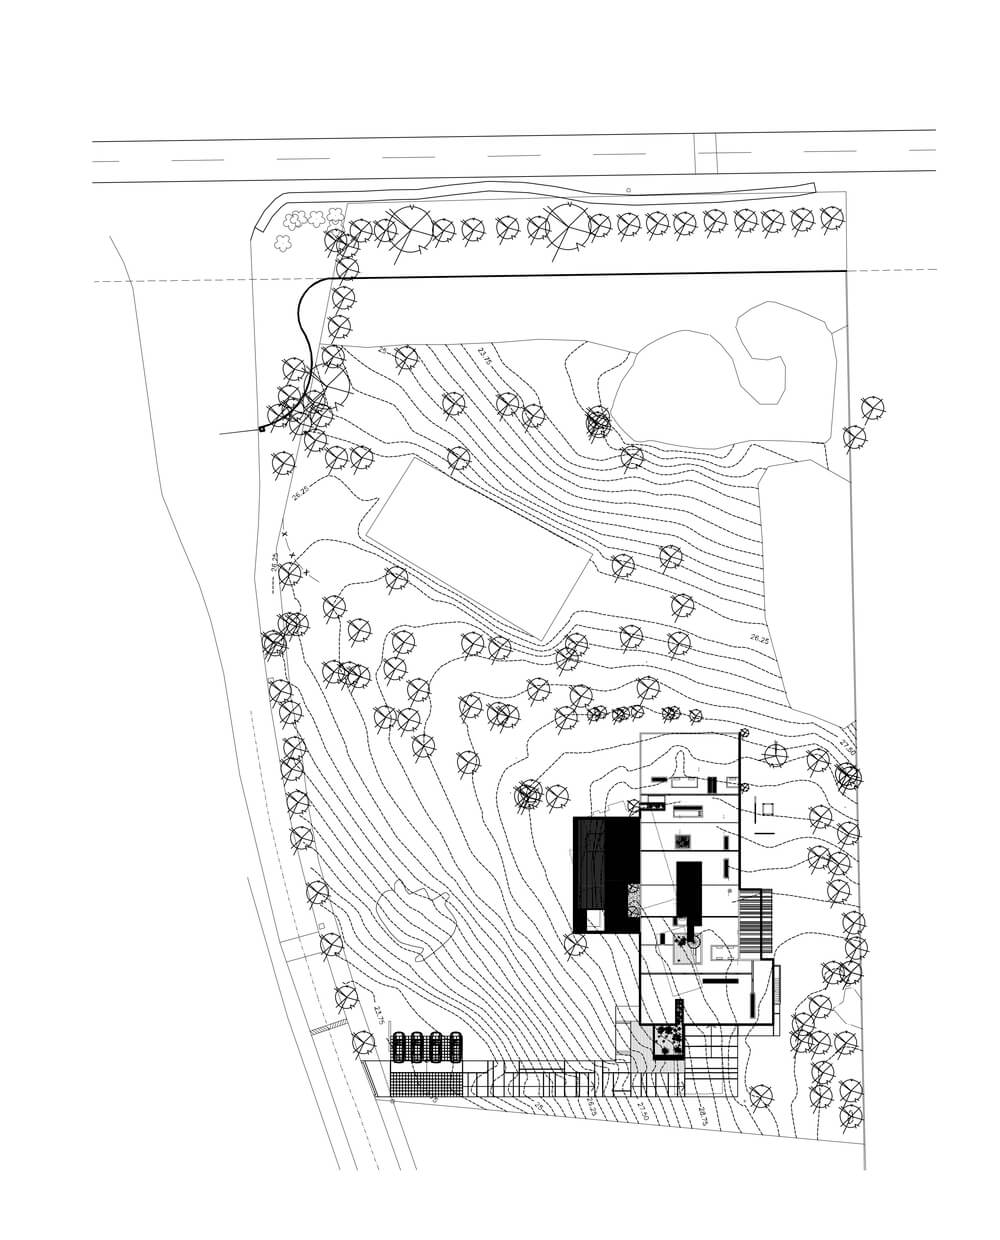 This is an illustration of the house site map.